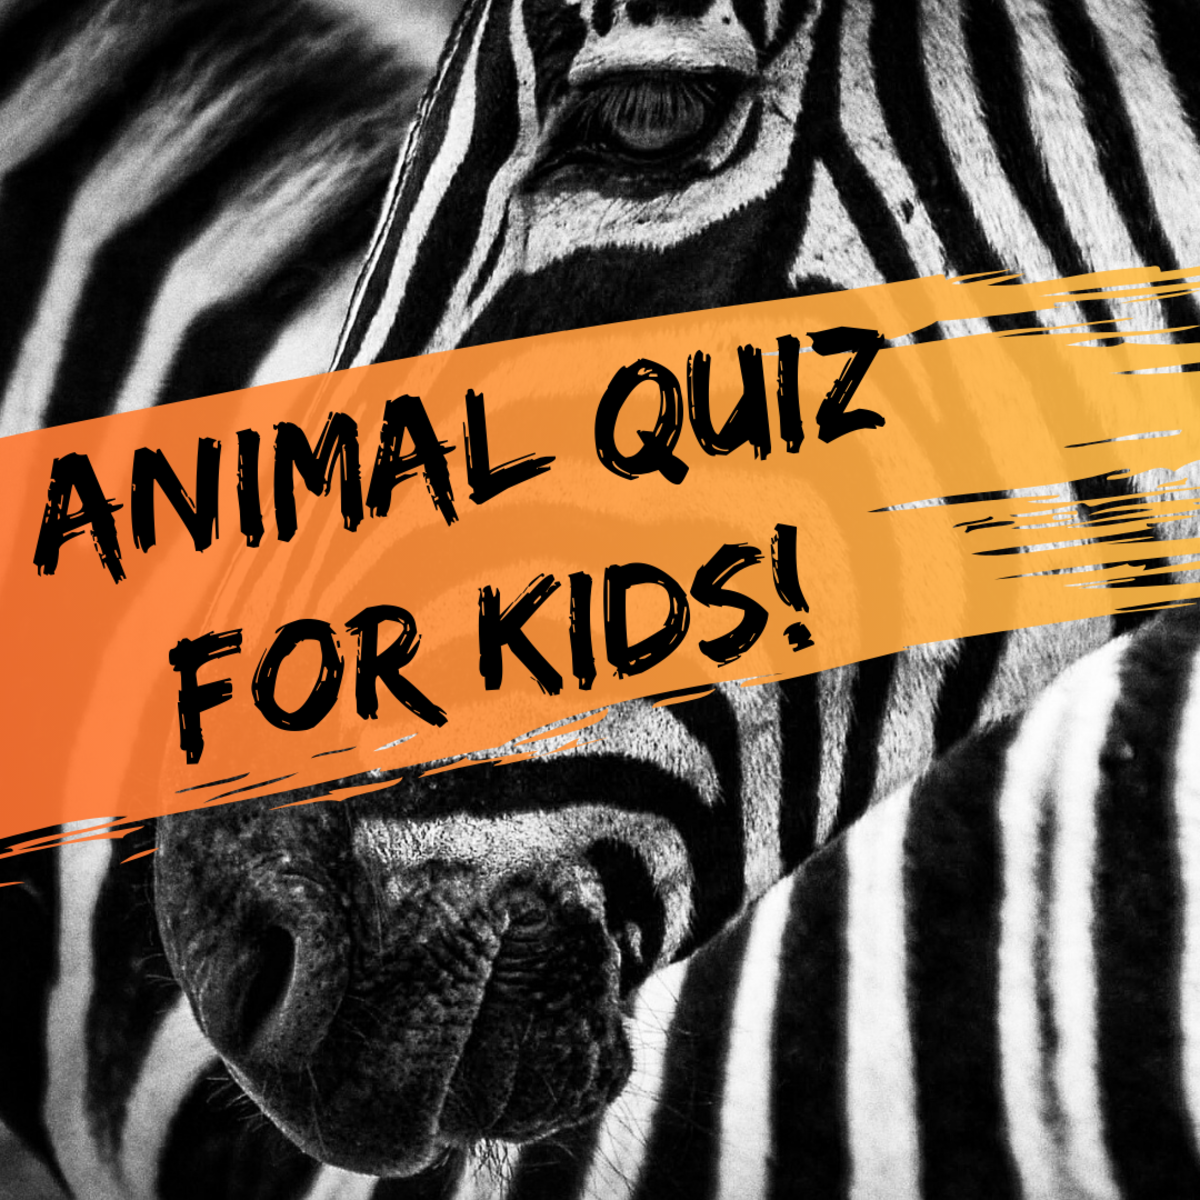 How much do you really know about animals? Find out with this short, fun quiz!